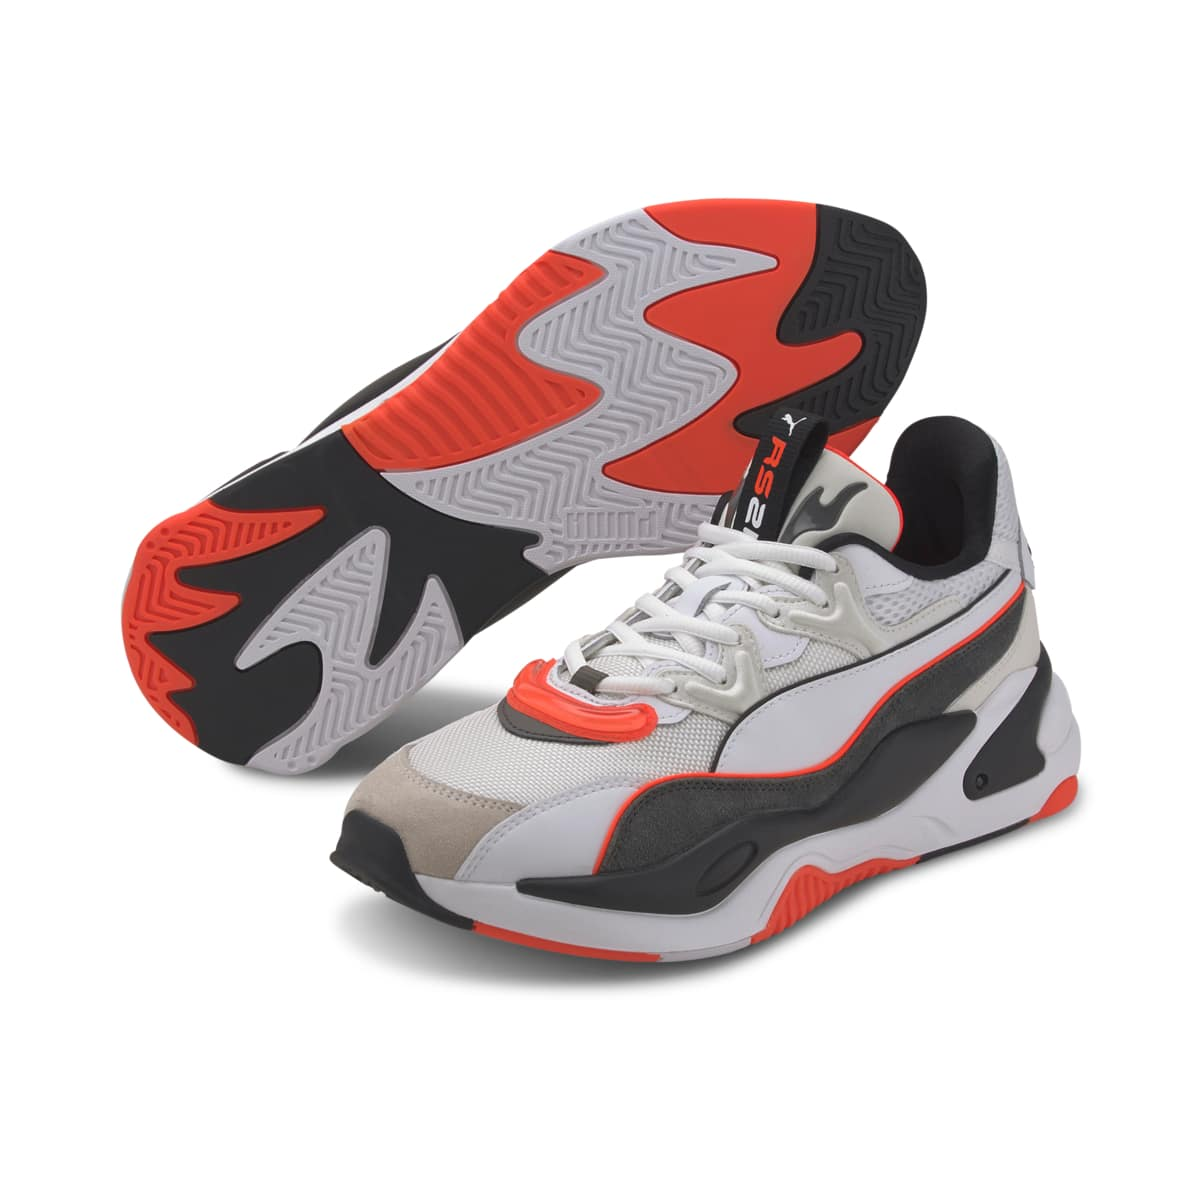 PUMA RS-2K MESSAGING WHITE/GRAY 20FA-S_photo_large